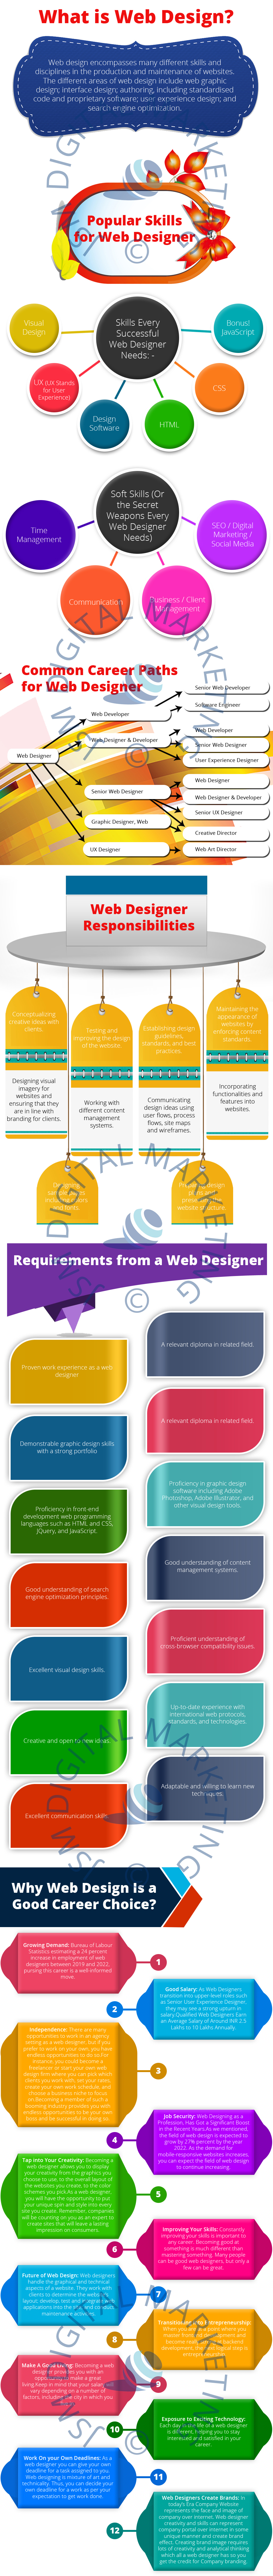 Is Web Design A Good Career Choice Right Now